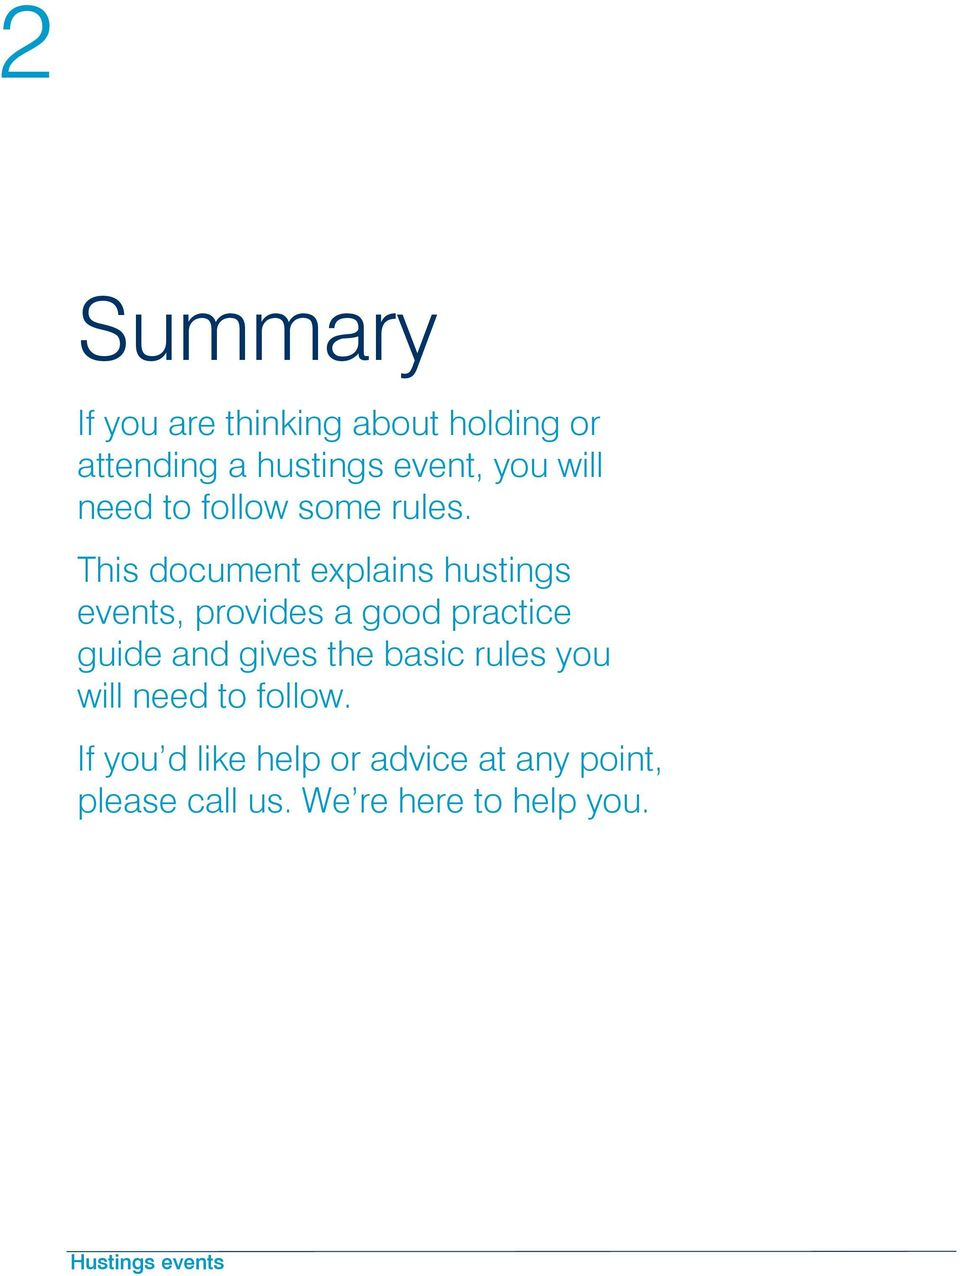 This document explains hustings events, provides a good practice guide and gives